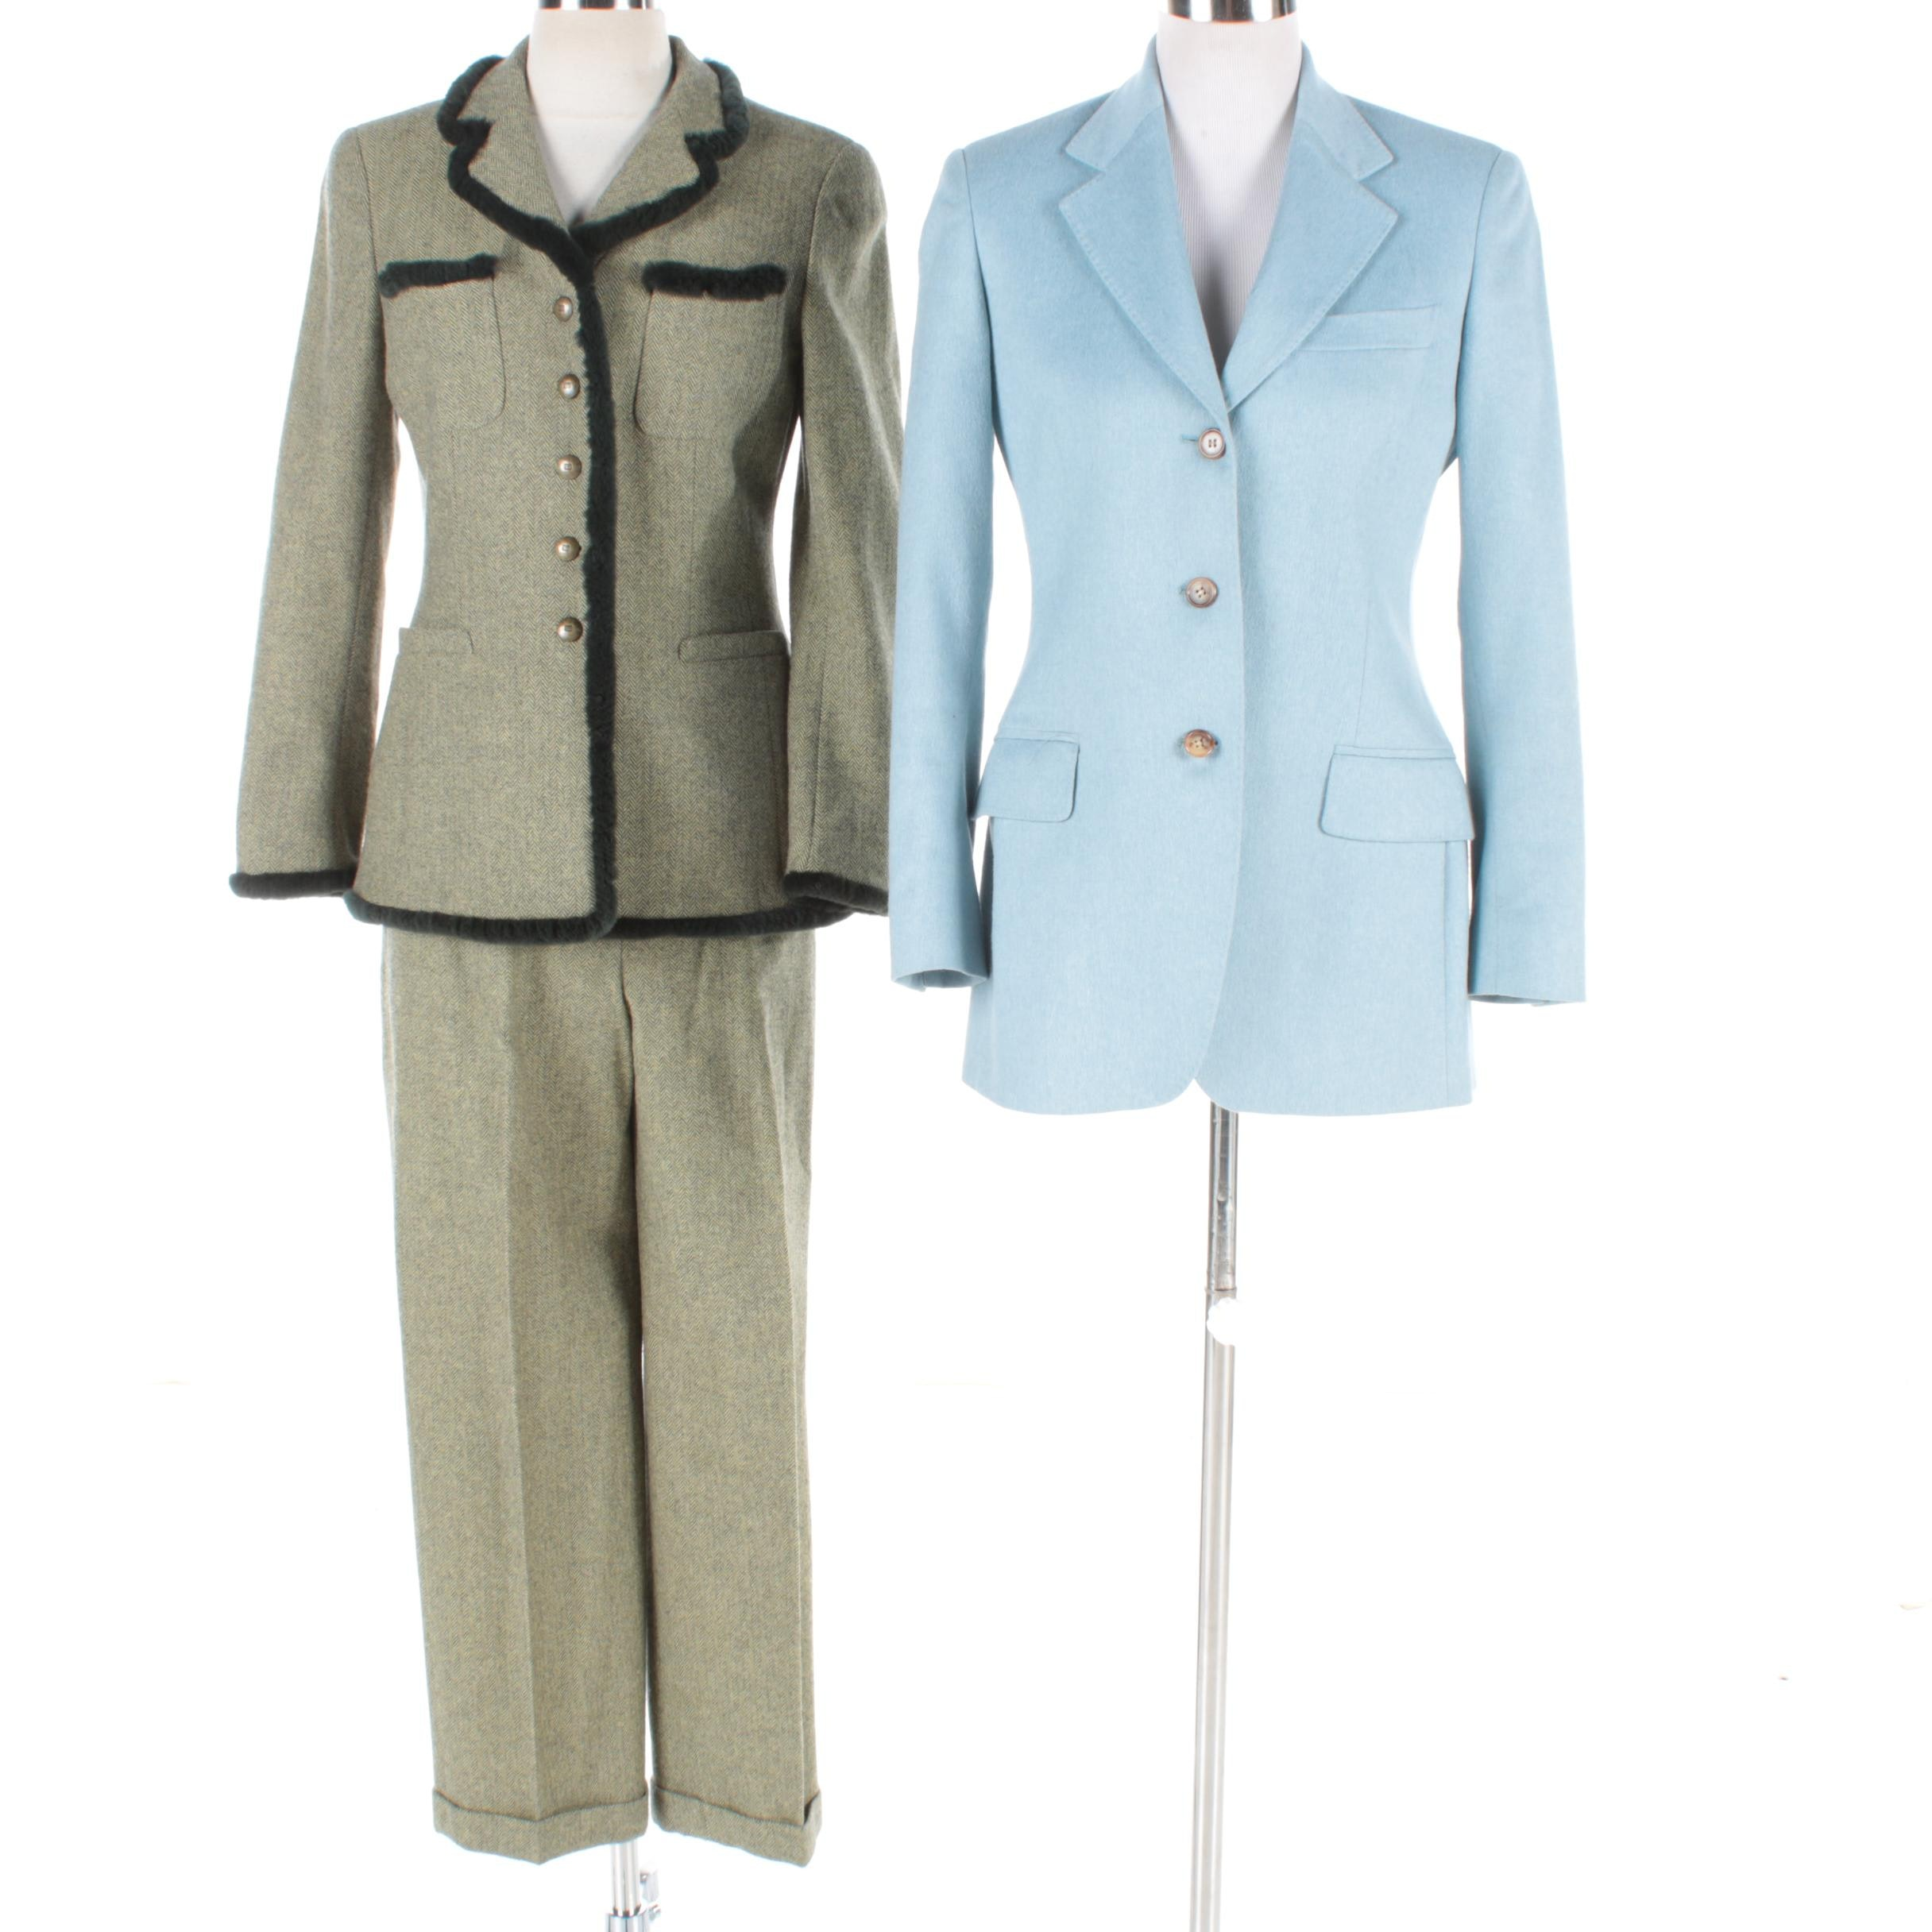 Women's Vintage Rena Lang Pant Suit and Loro Piana Suit Jacket